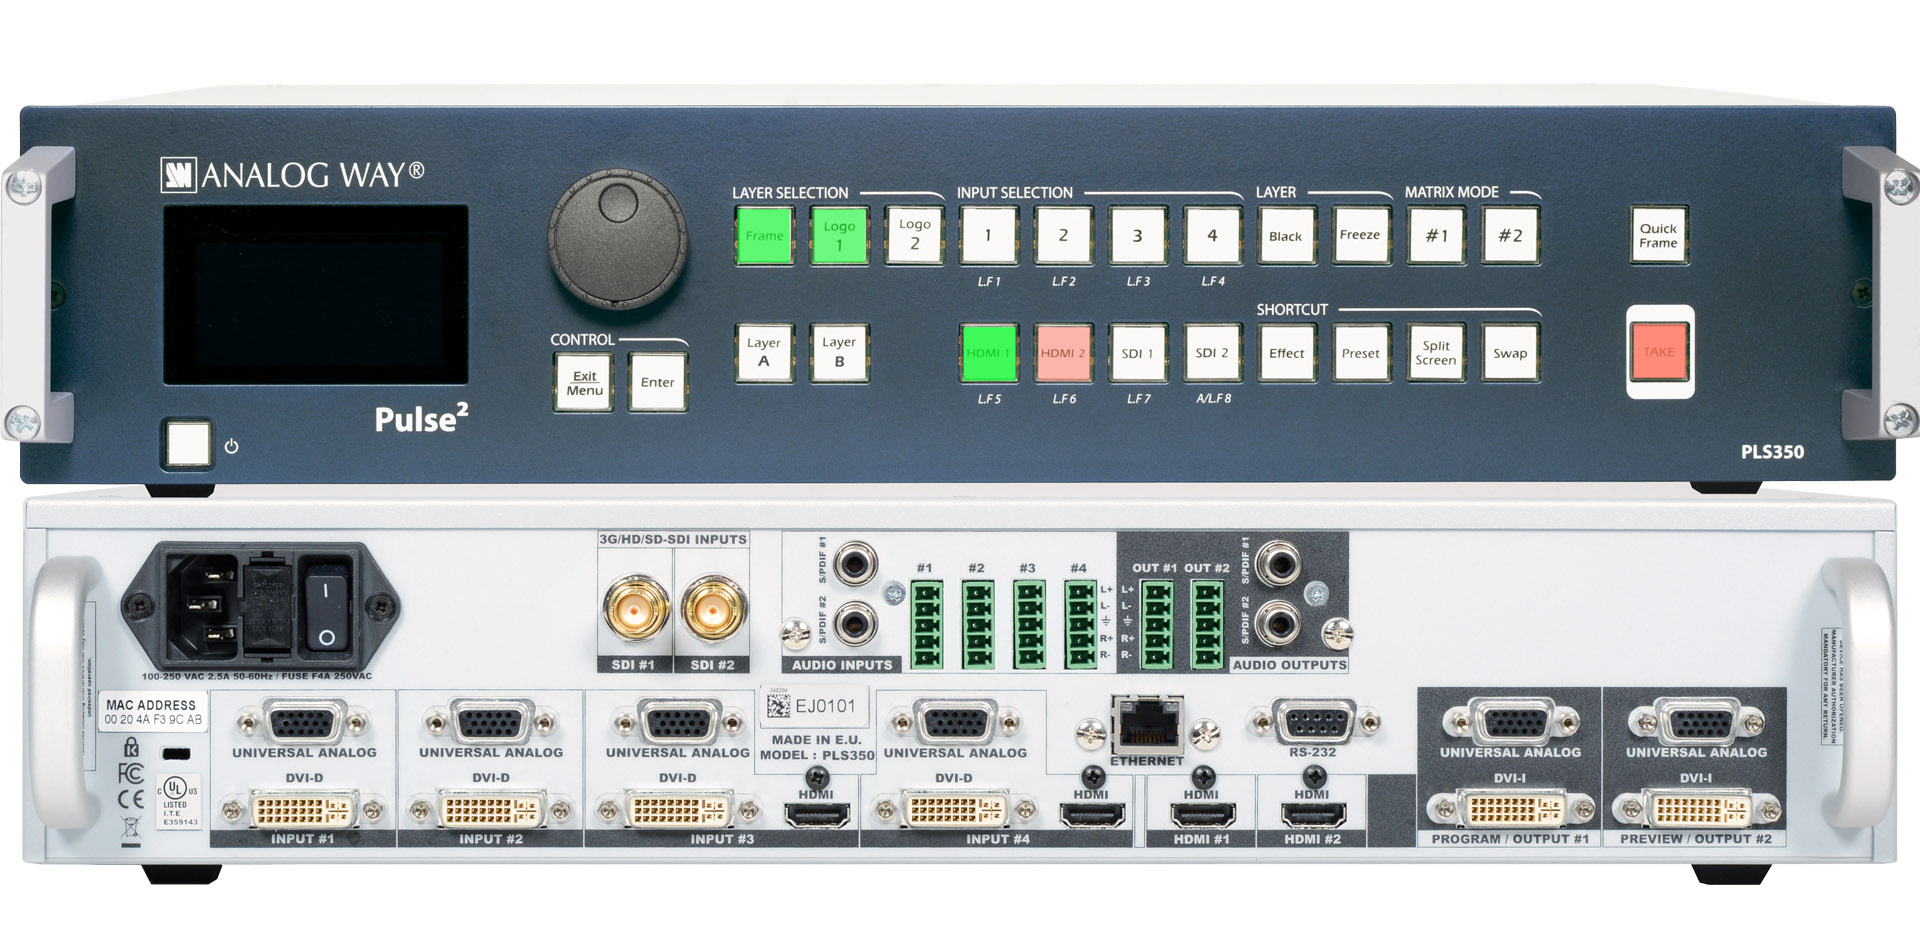 Analogway PLS350 Pulse 2 Switcher Image